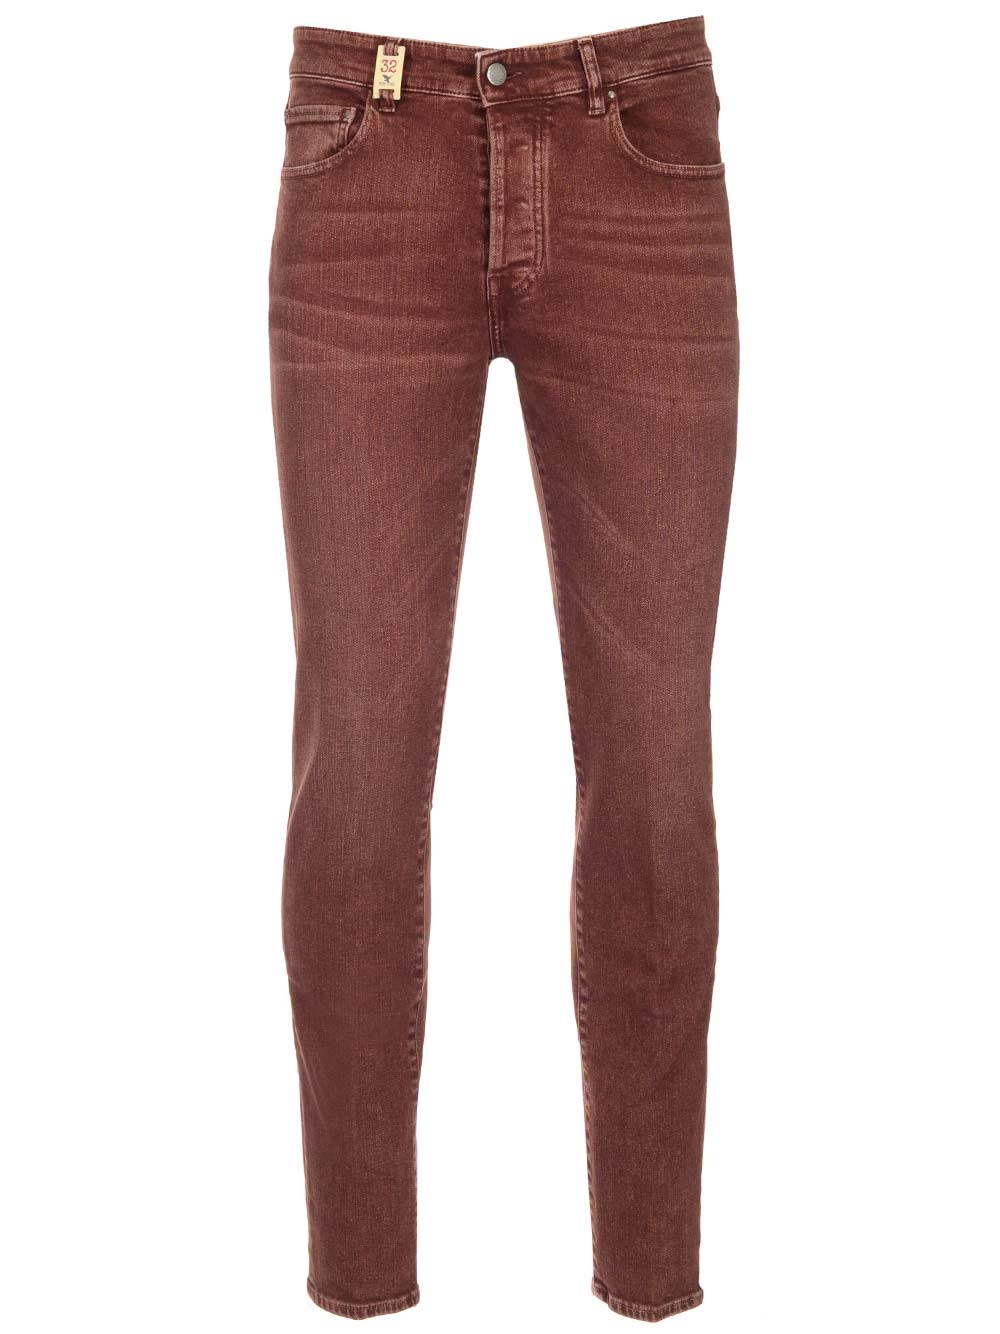 BARMAS Burgundy Stretch Cotton Jeans